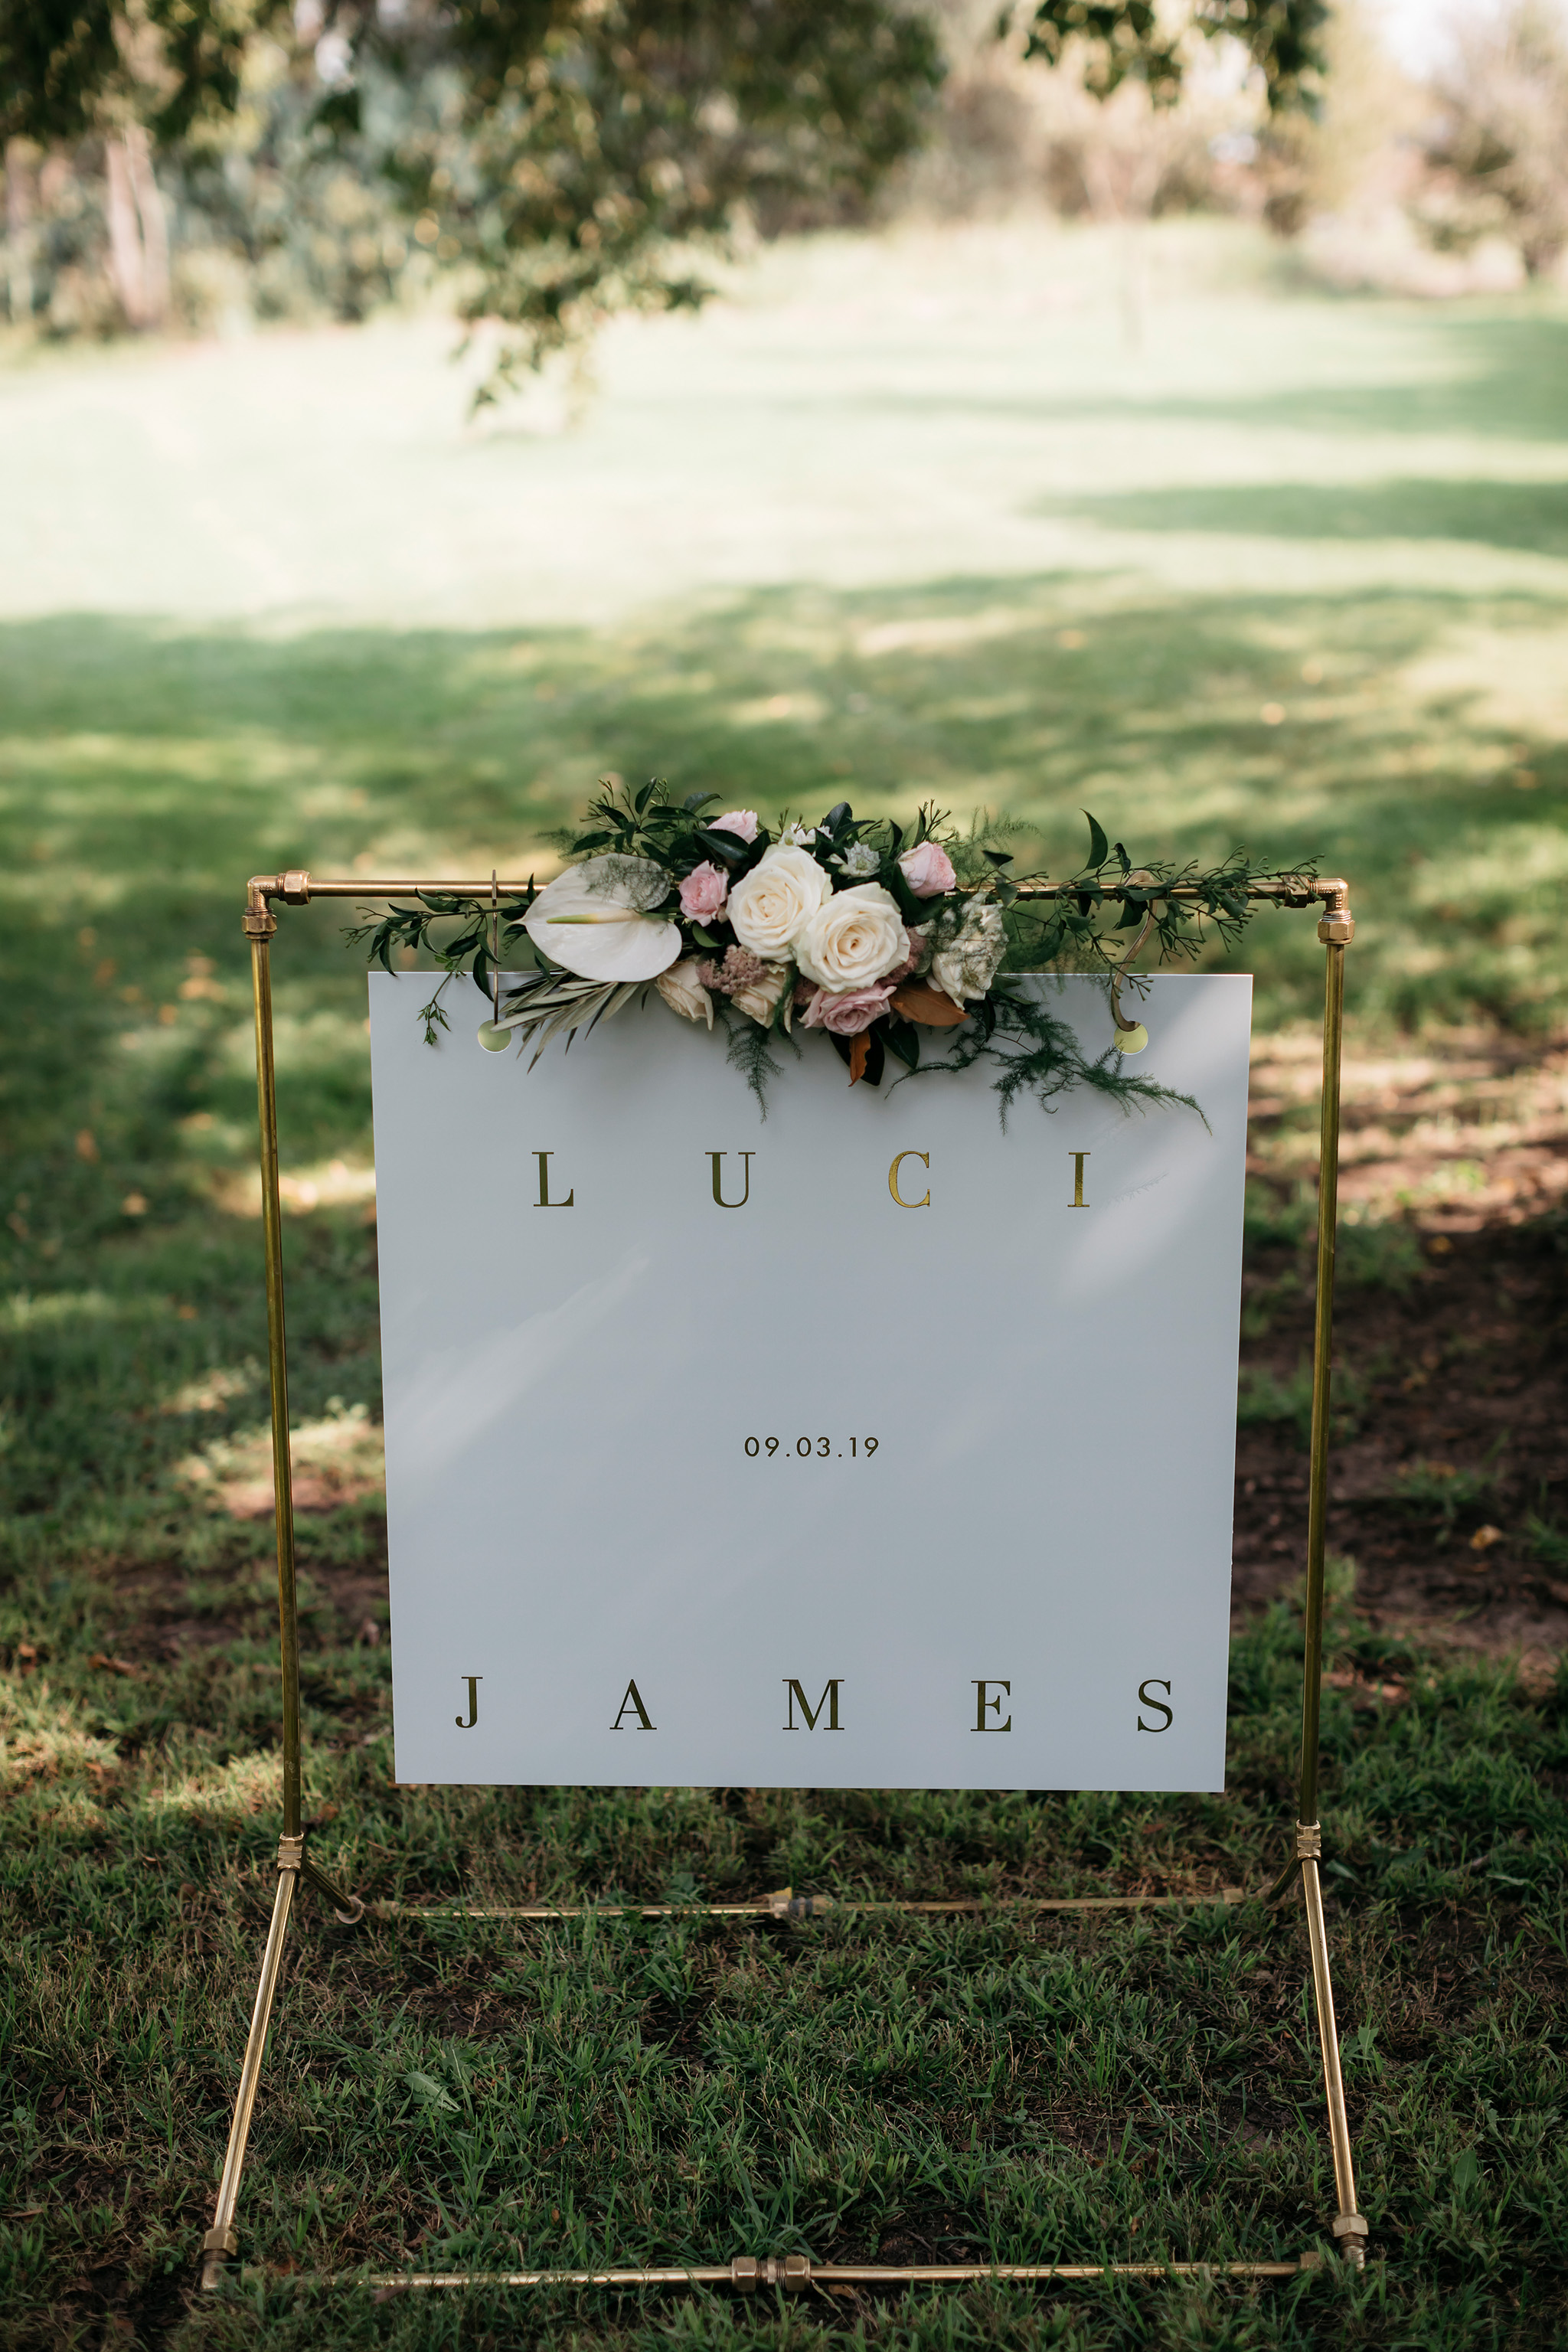 Luci+James_KatieHarmsworth-198.jpg